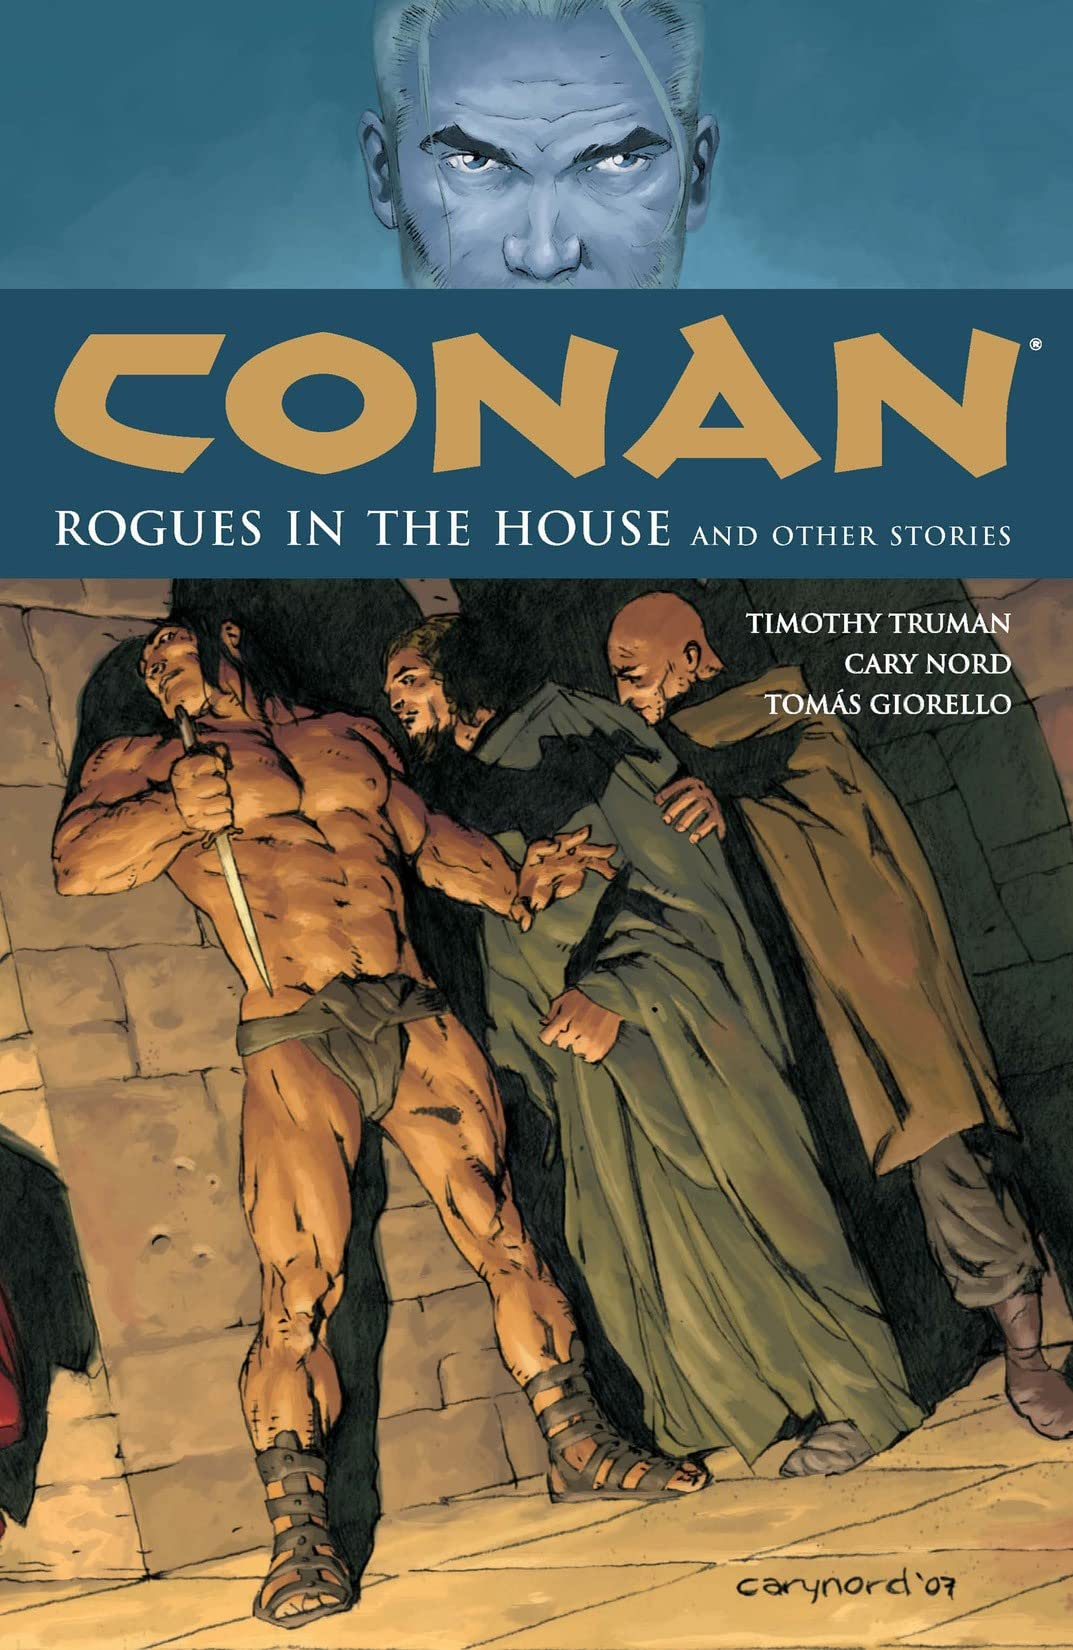 Conan Vol. 5: Rogues in the House and Other Stories